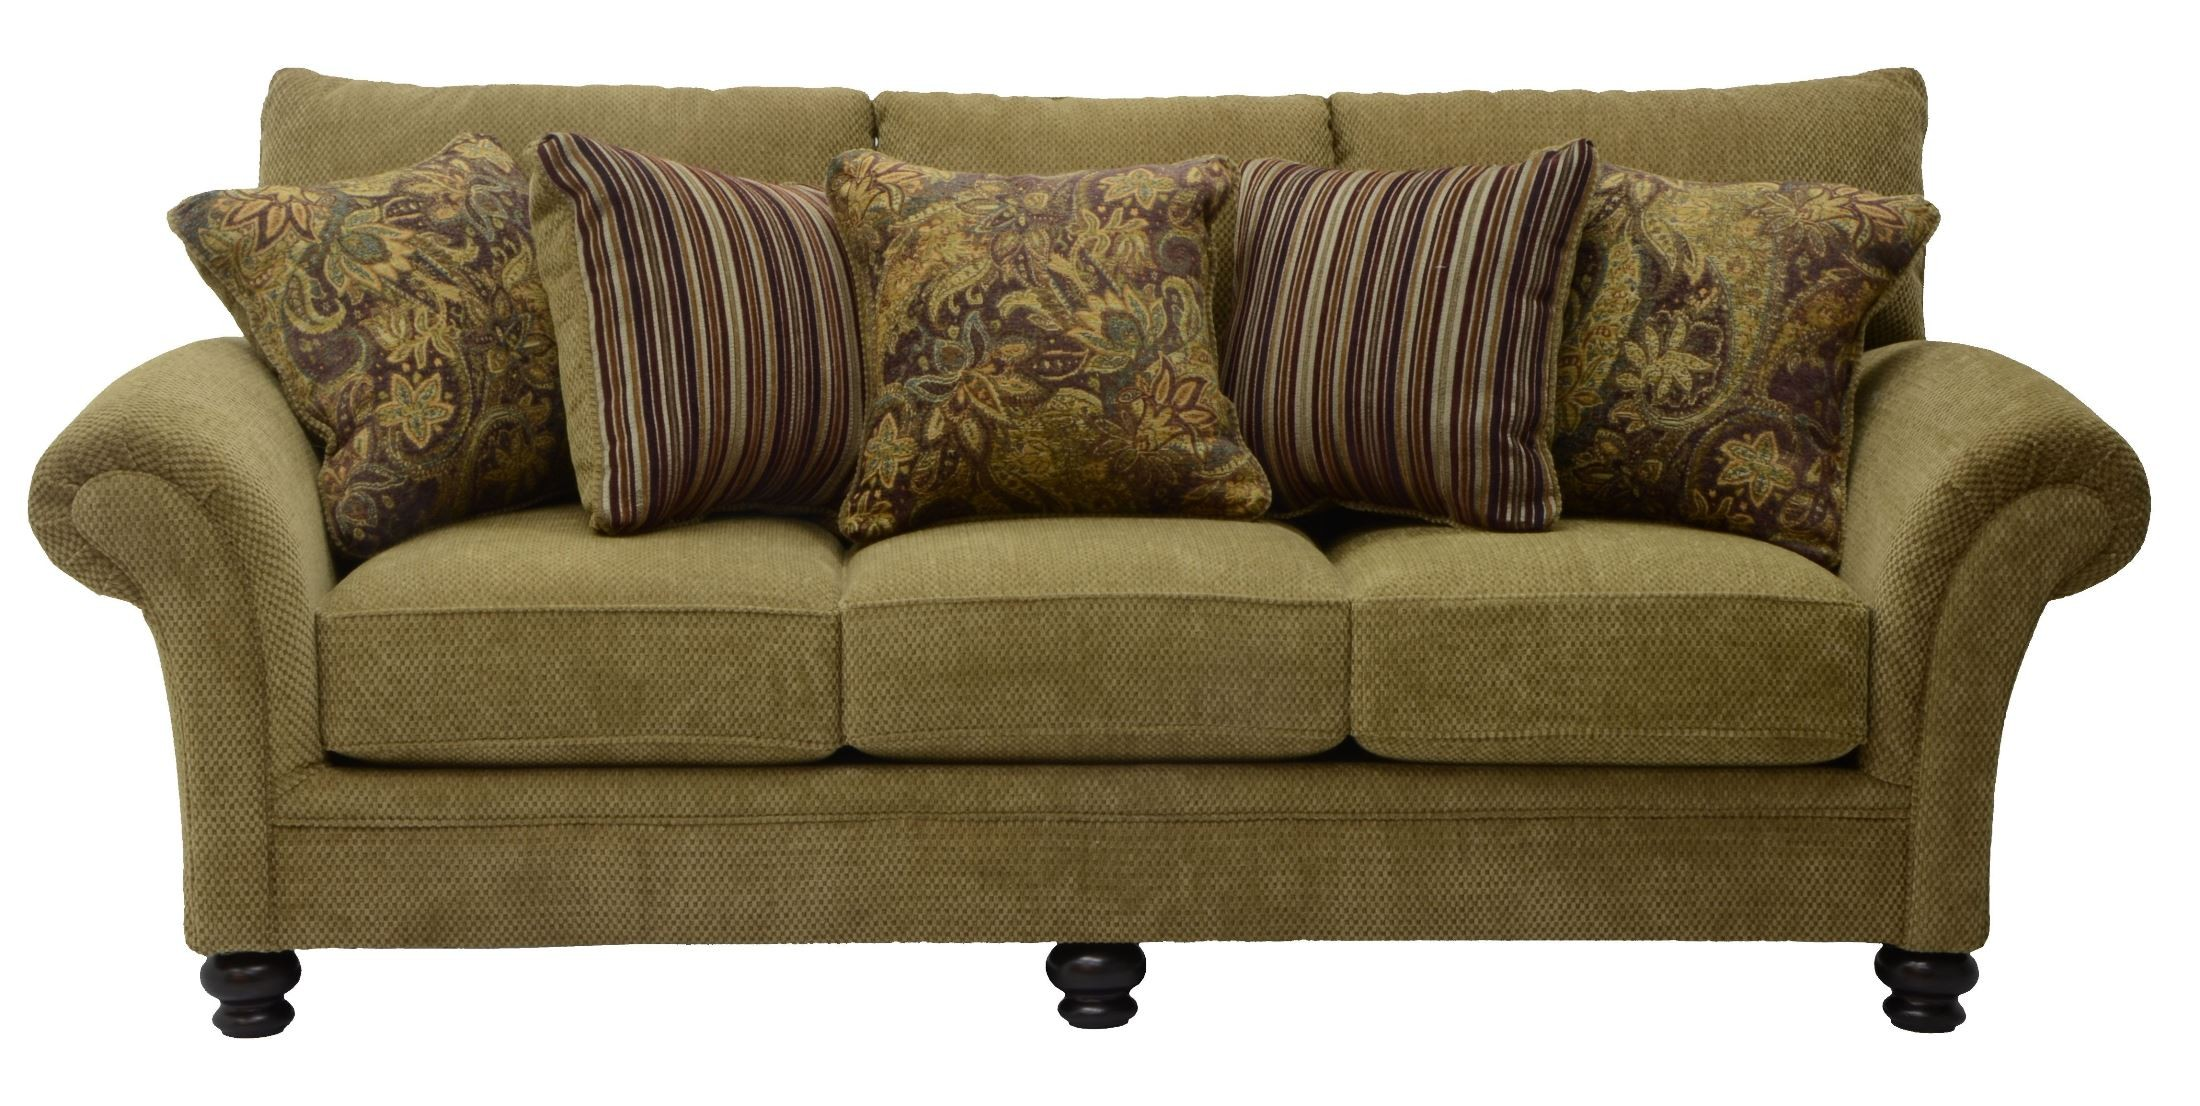 Bon Suffolk Burlap Sofa From Jackson (442603000000000000) | Coleman Furniture